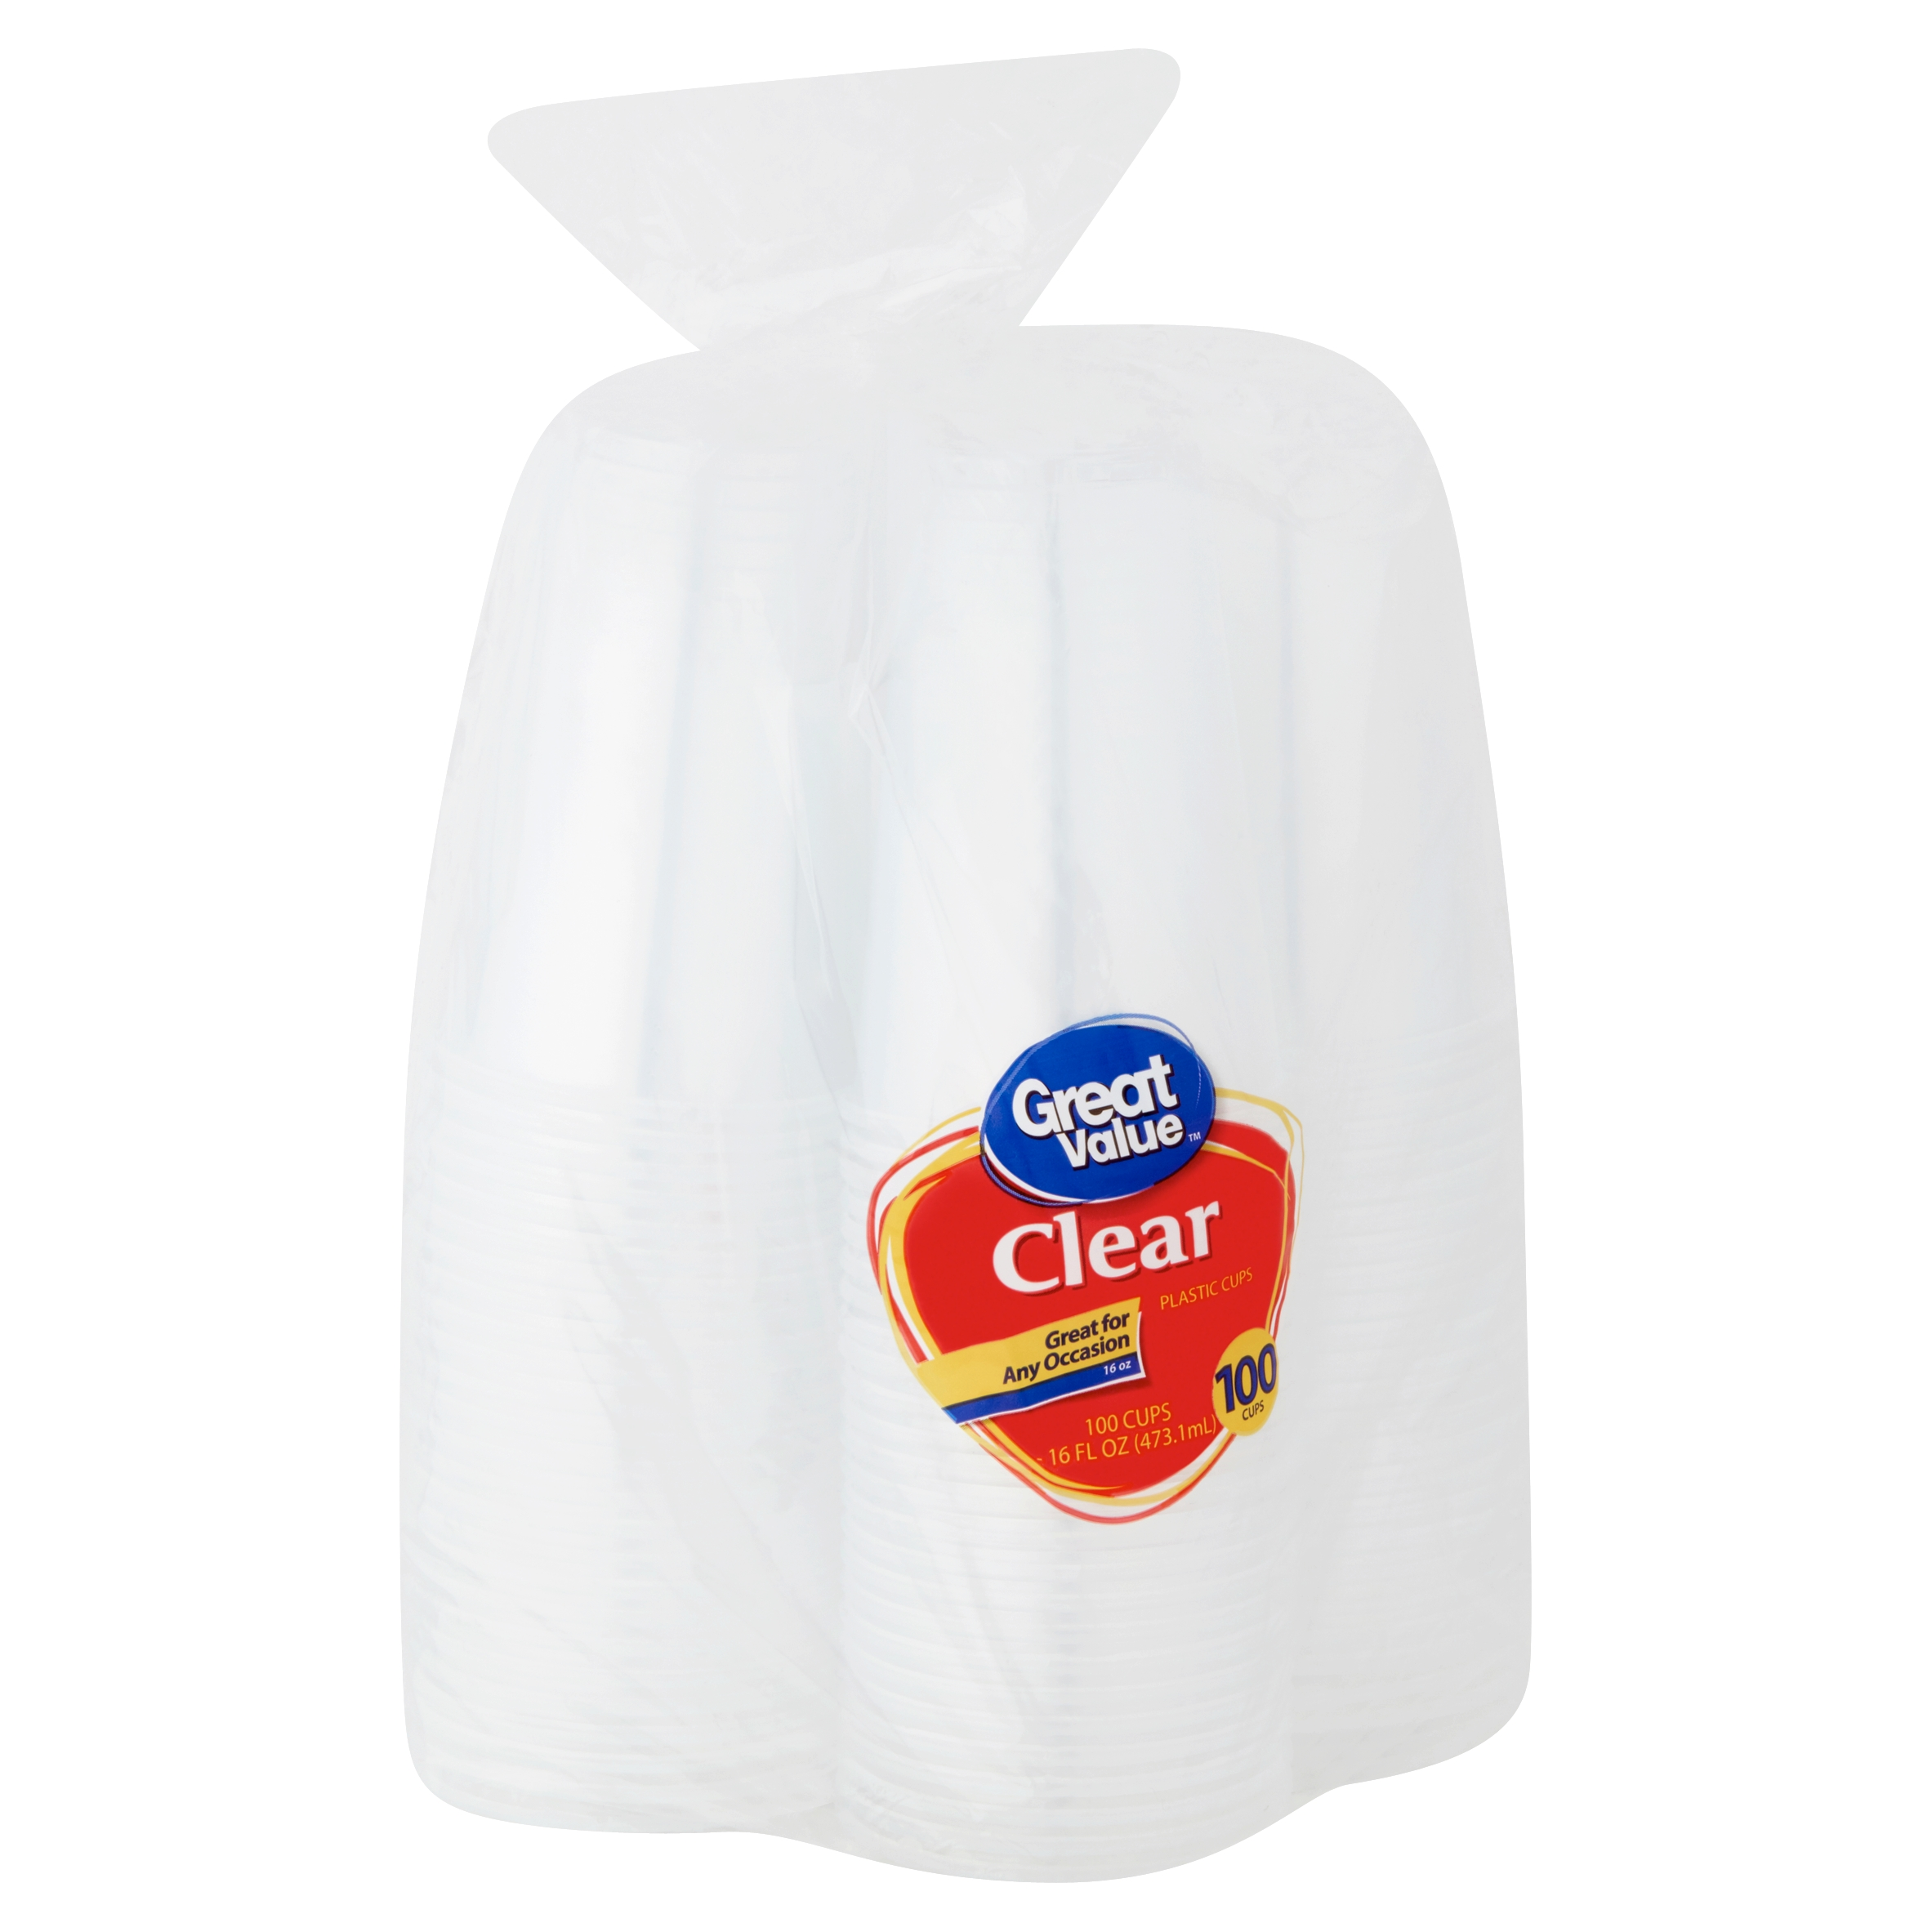 Great Value 16 oz Clear Plastic Cups,100 count